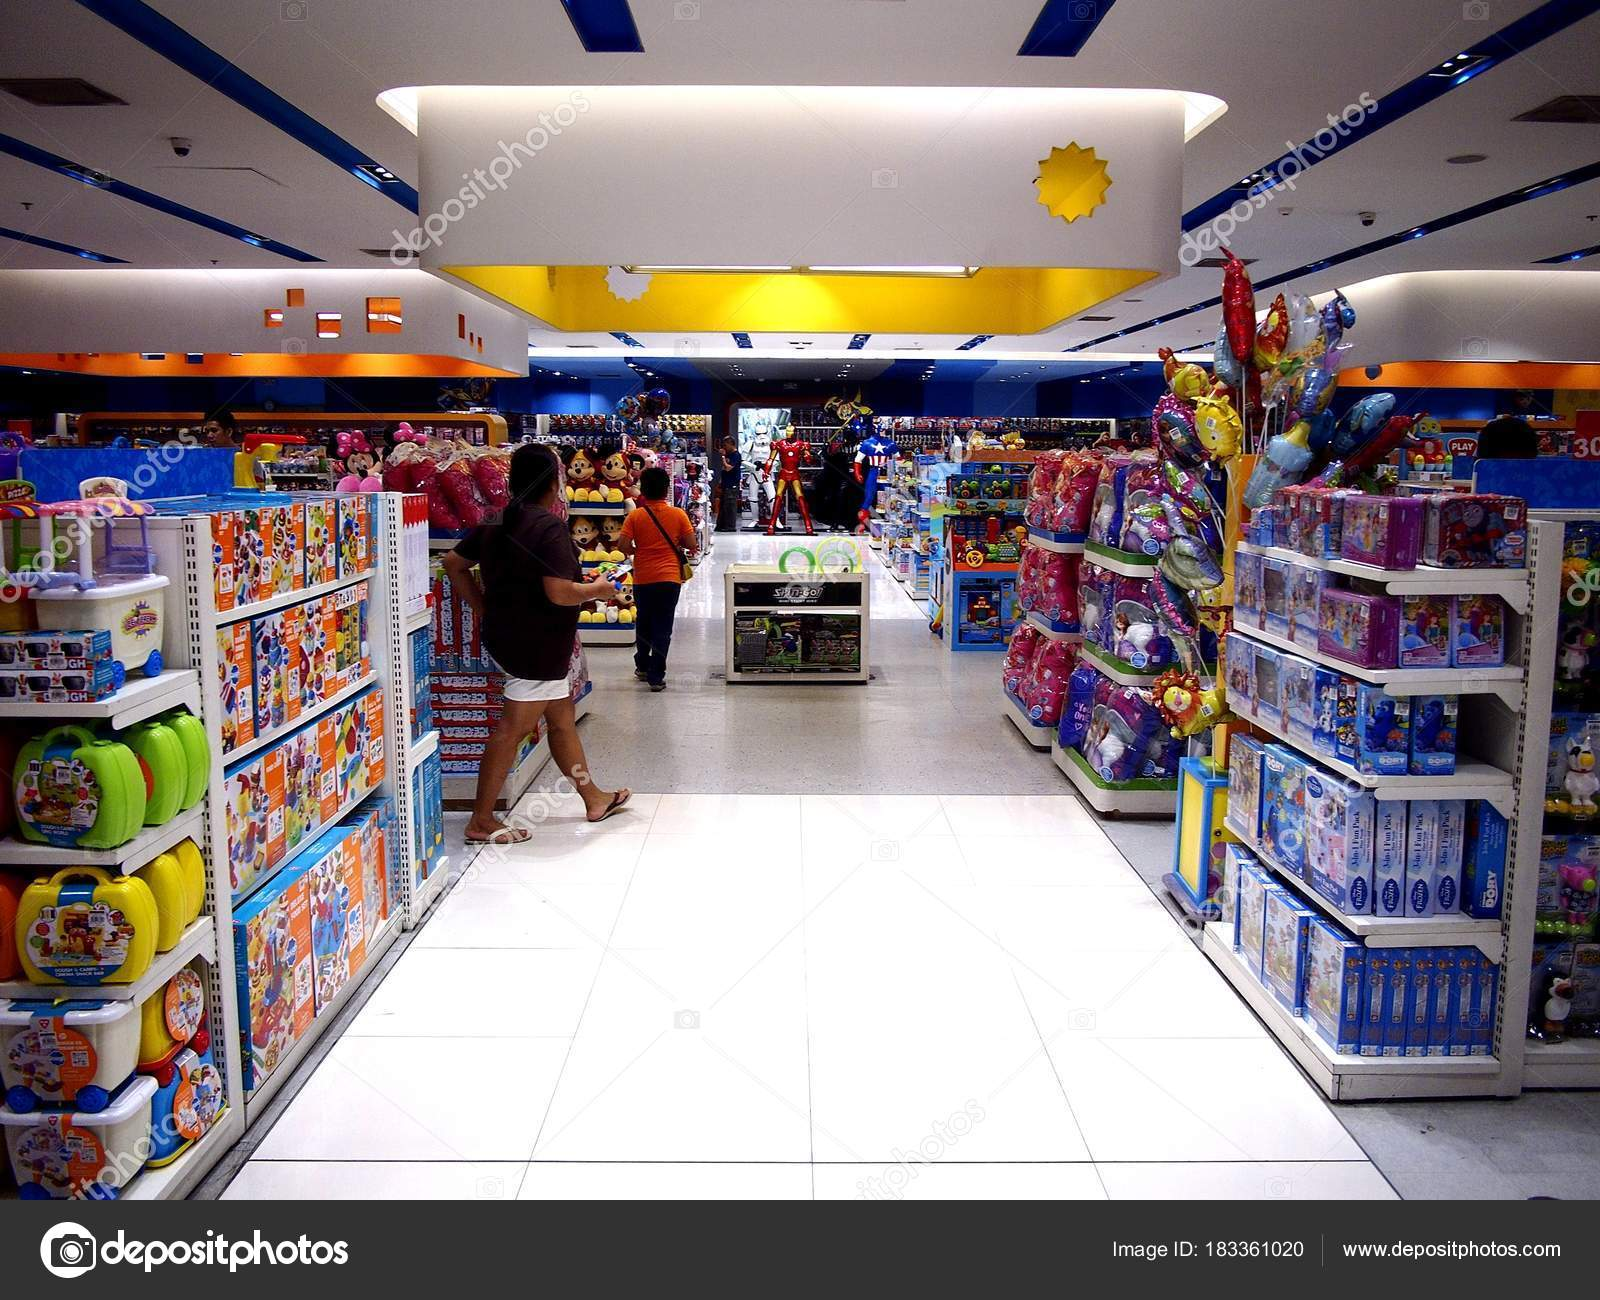 Assorted Toys On Display At A Toy Store In A Shopping Mall Stock